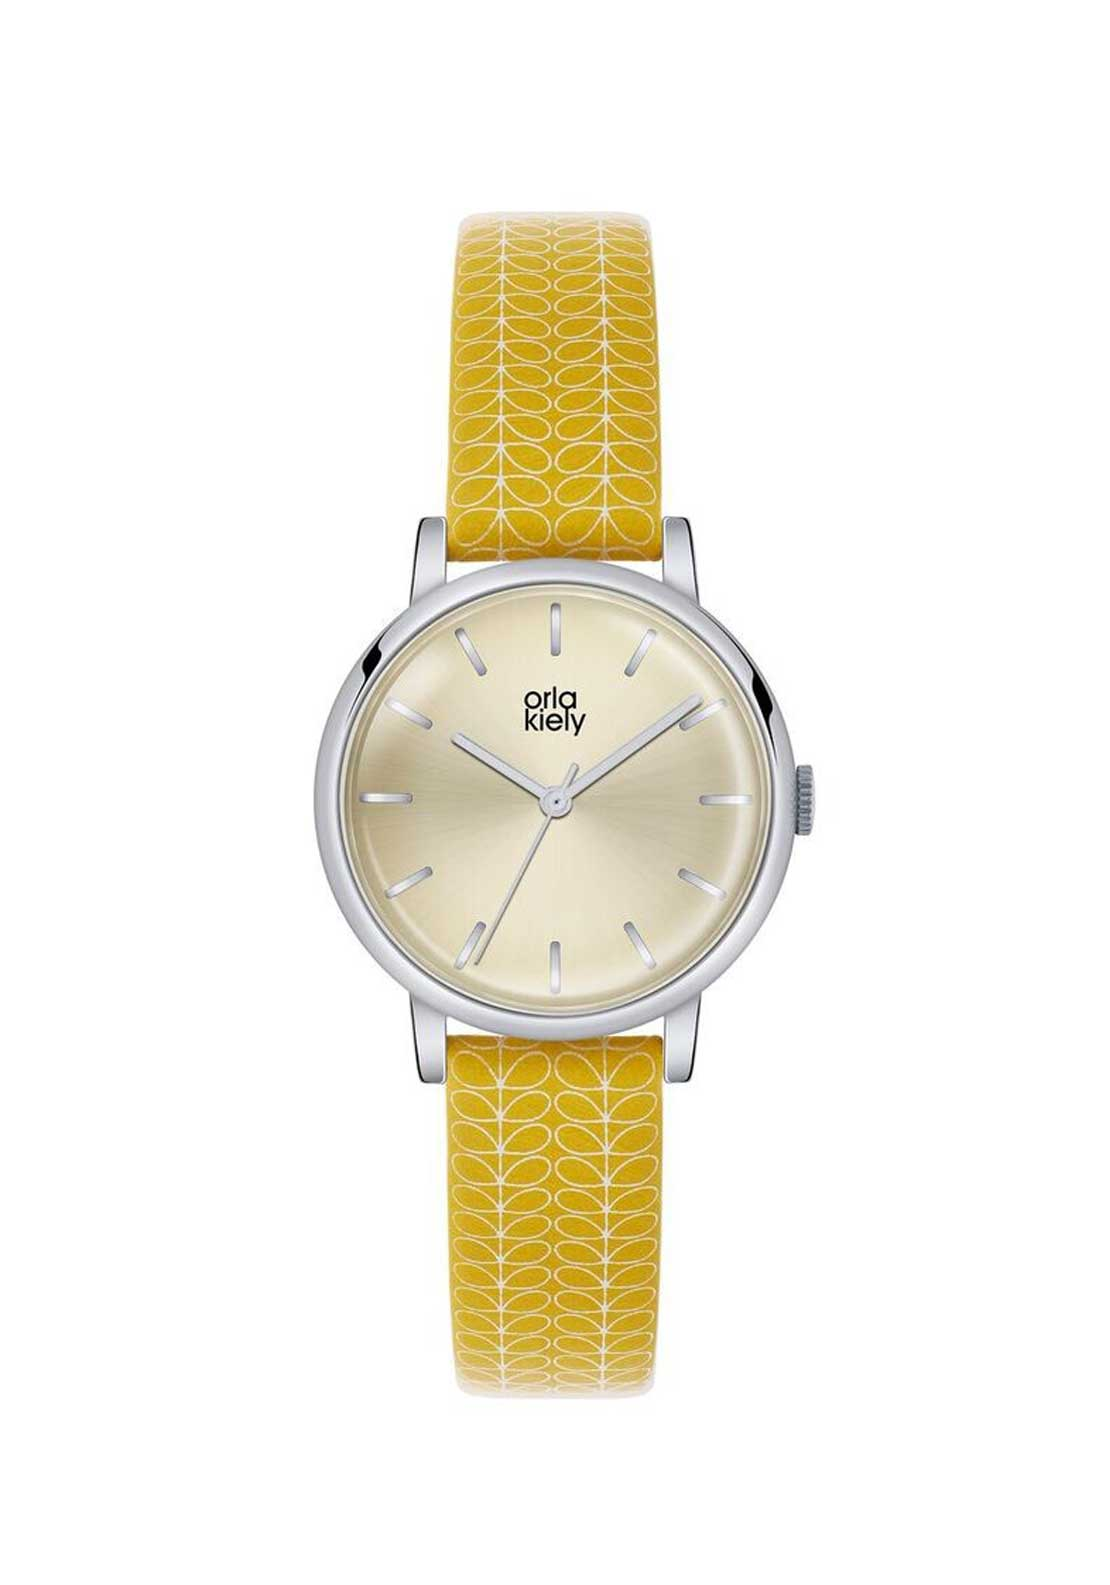 Orla Kiely Yellow Stem Leather Strap Watch